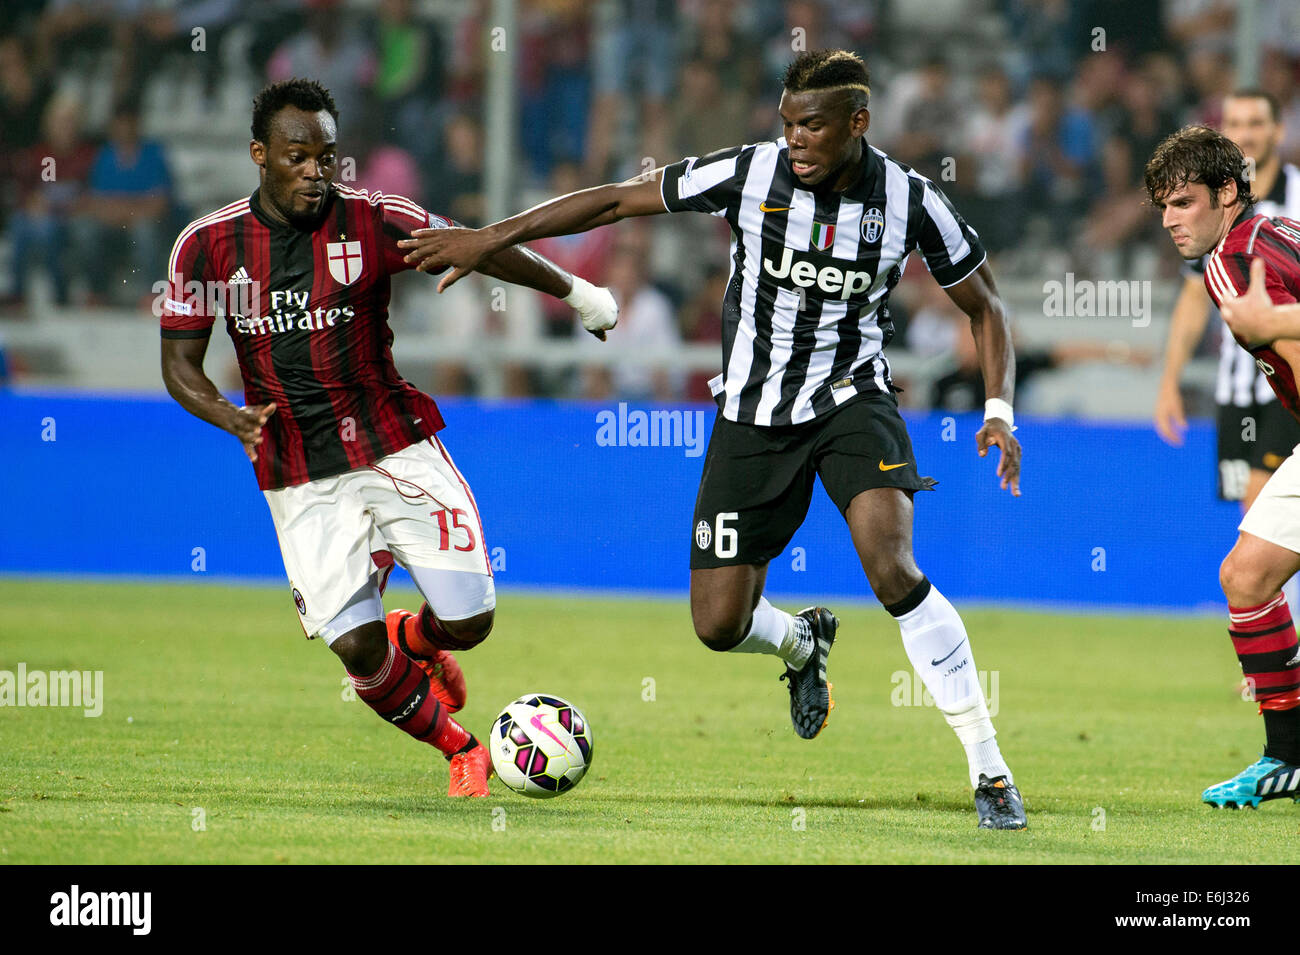 Michael Essien Milan Paul Pogba Juventus AUGUST 23 2014